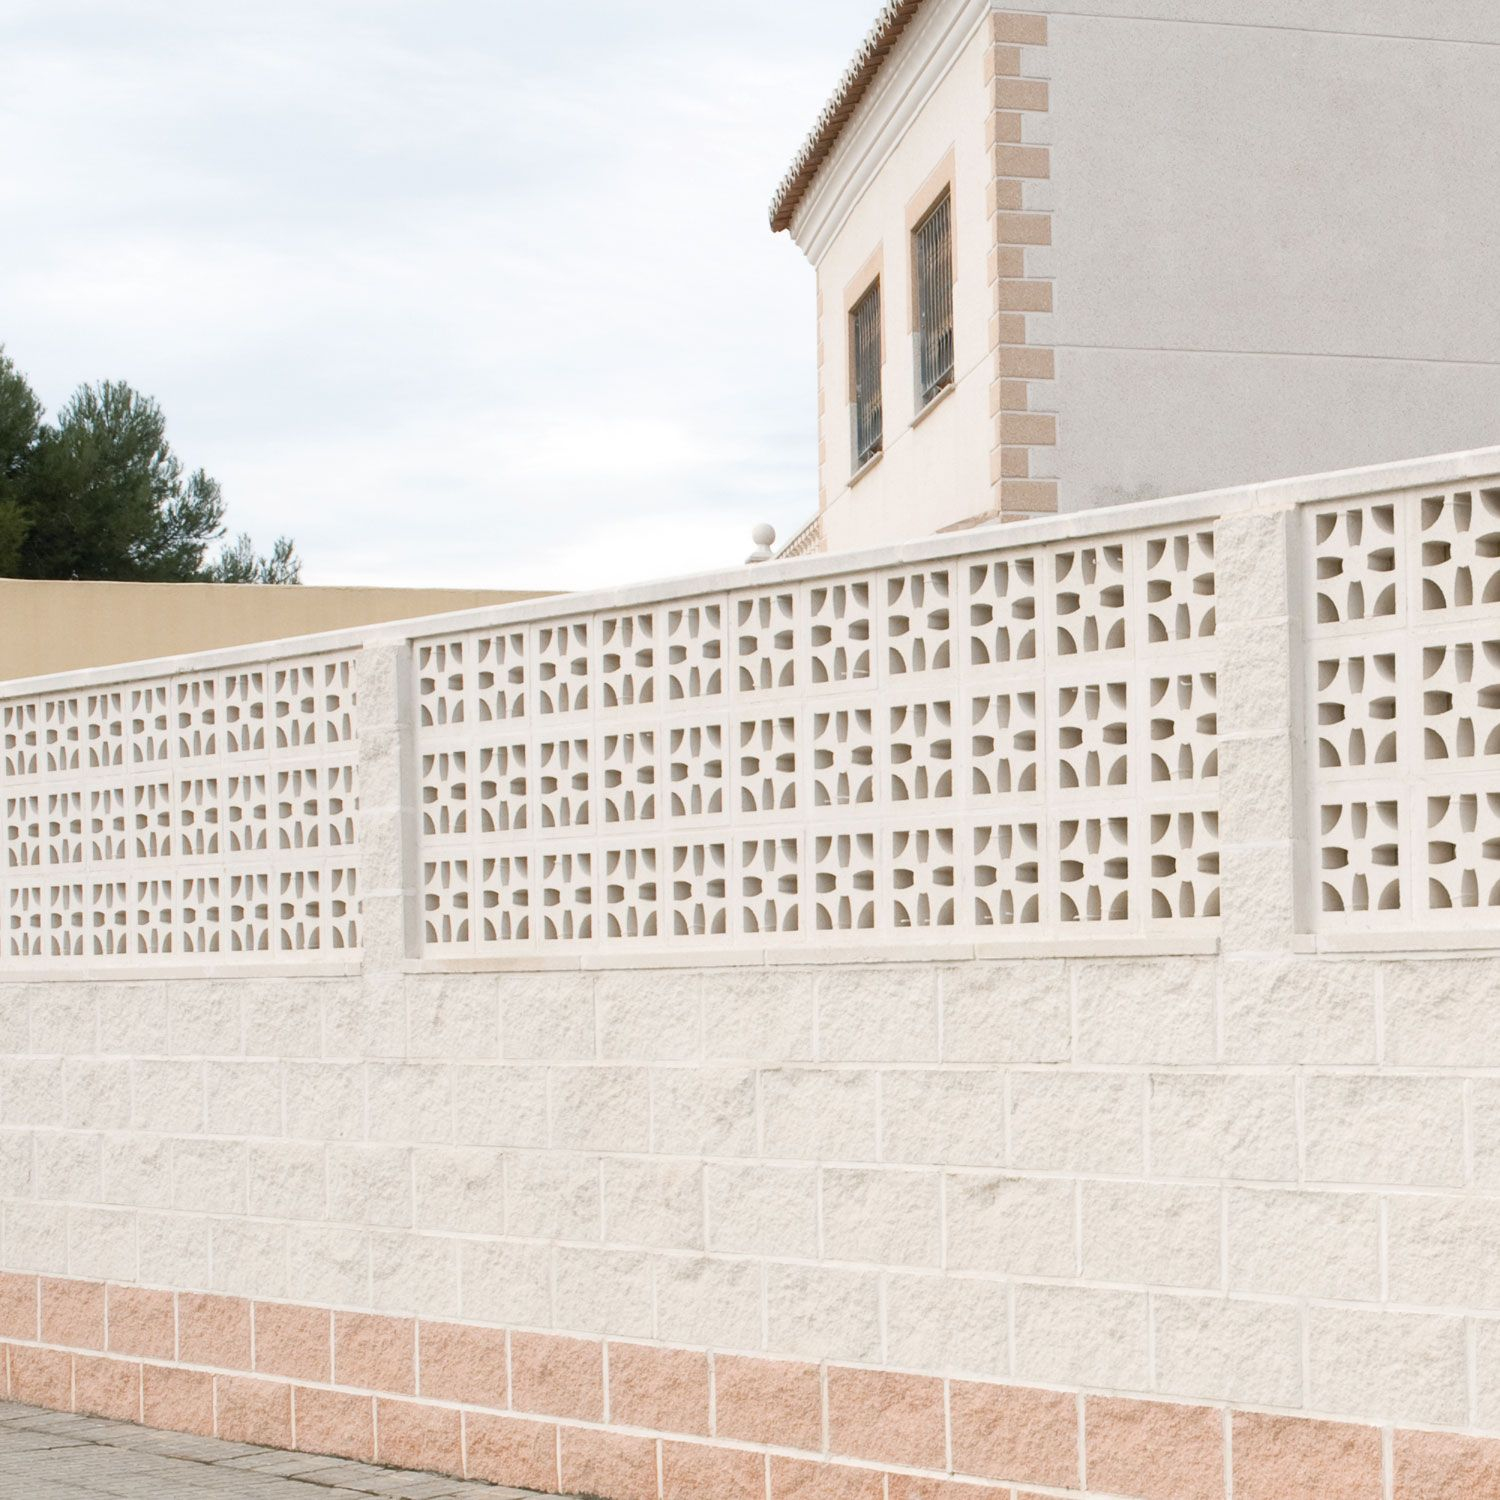 Celos A Malta Celos As Decorativas Decorative Bricks  ~ Celosias De Madera Leroy Merlin